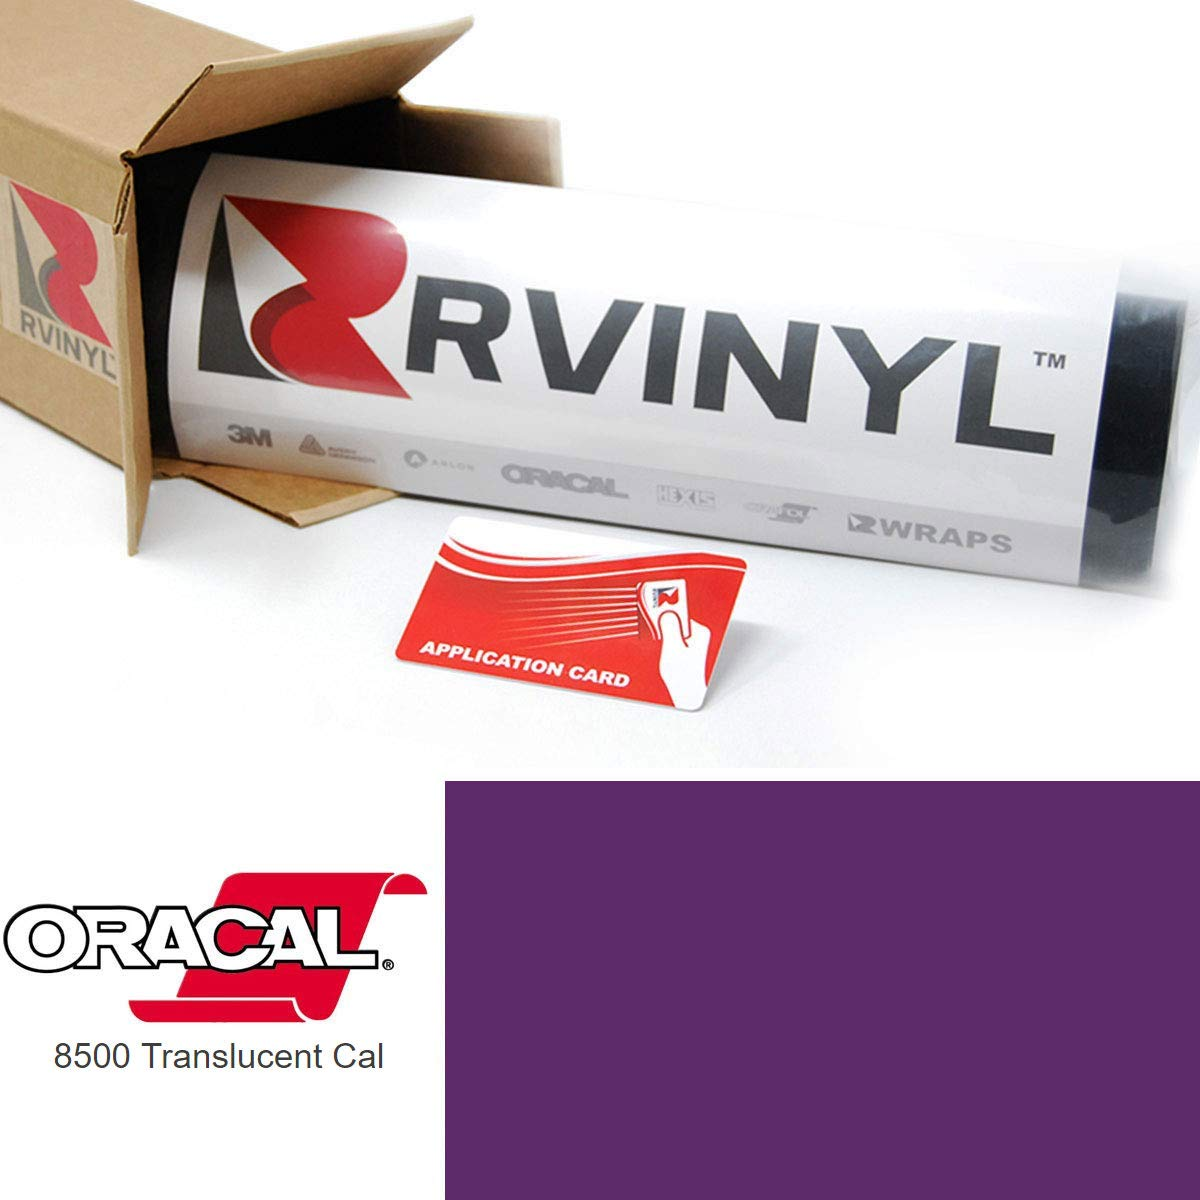 ORACAL 8500 Violet 040 Translucent Calendered Film 2ft x 10yd W/Application Card Vinyl Film Sheet Roll - for Cricut, Silhouette Cameo, Craft and Sign Cutters